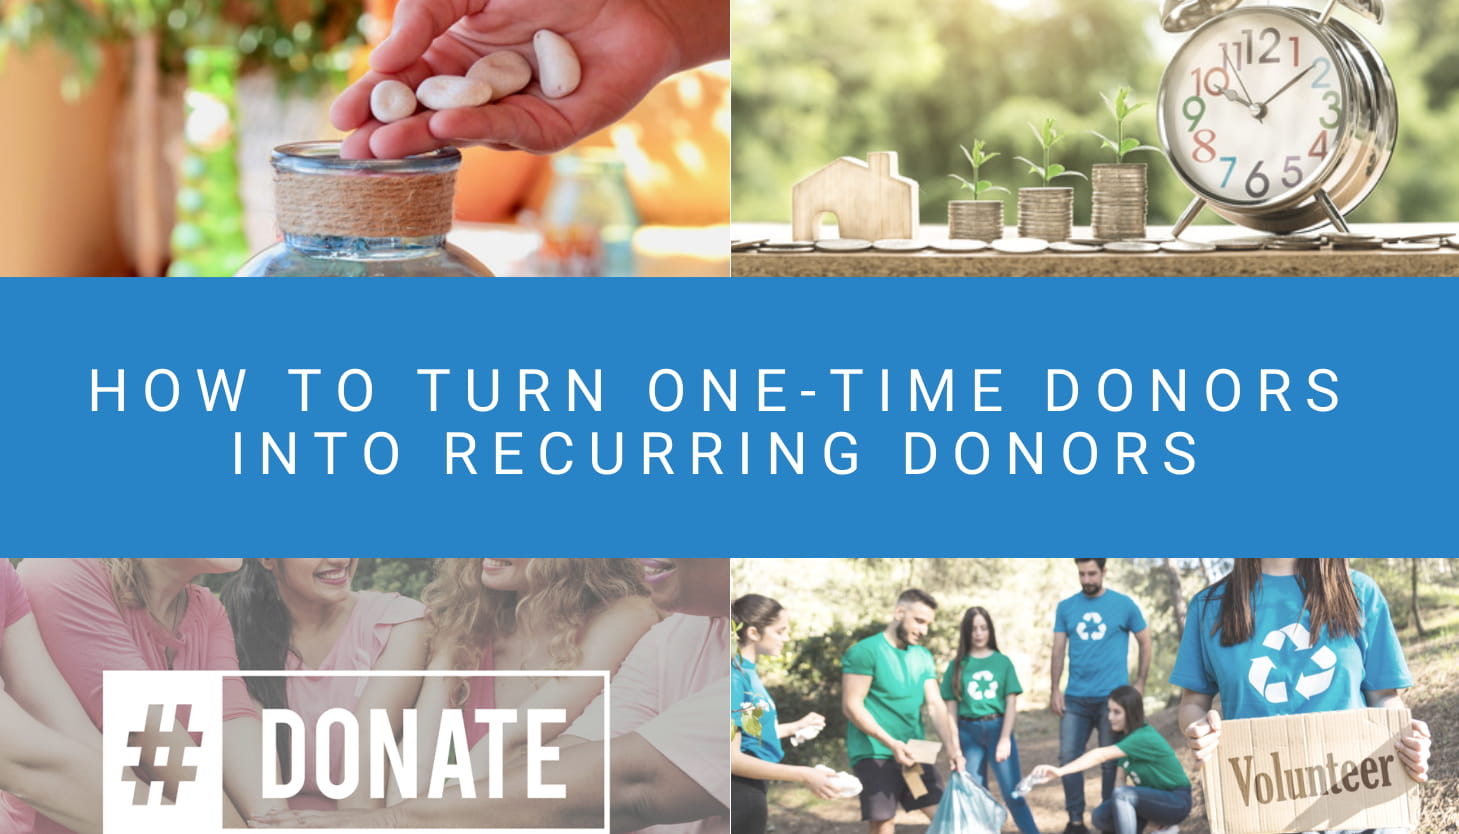 How to Turn One-Time Donors Into Recurring Donors